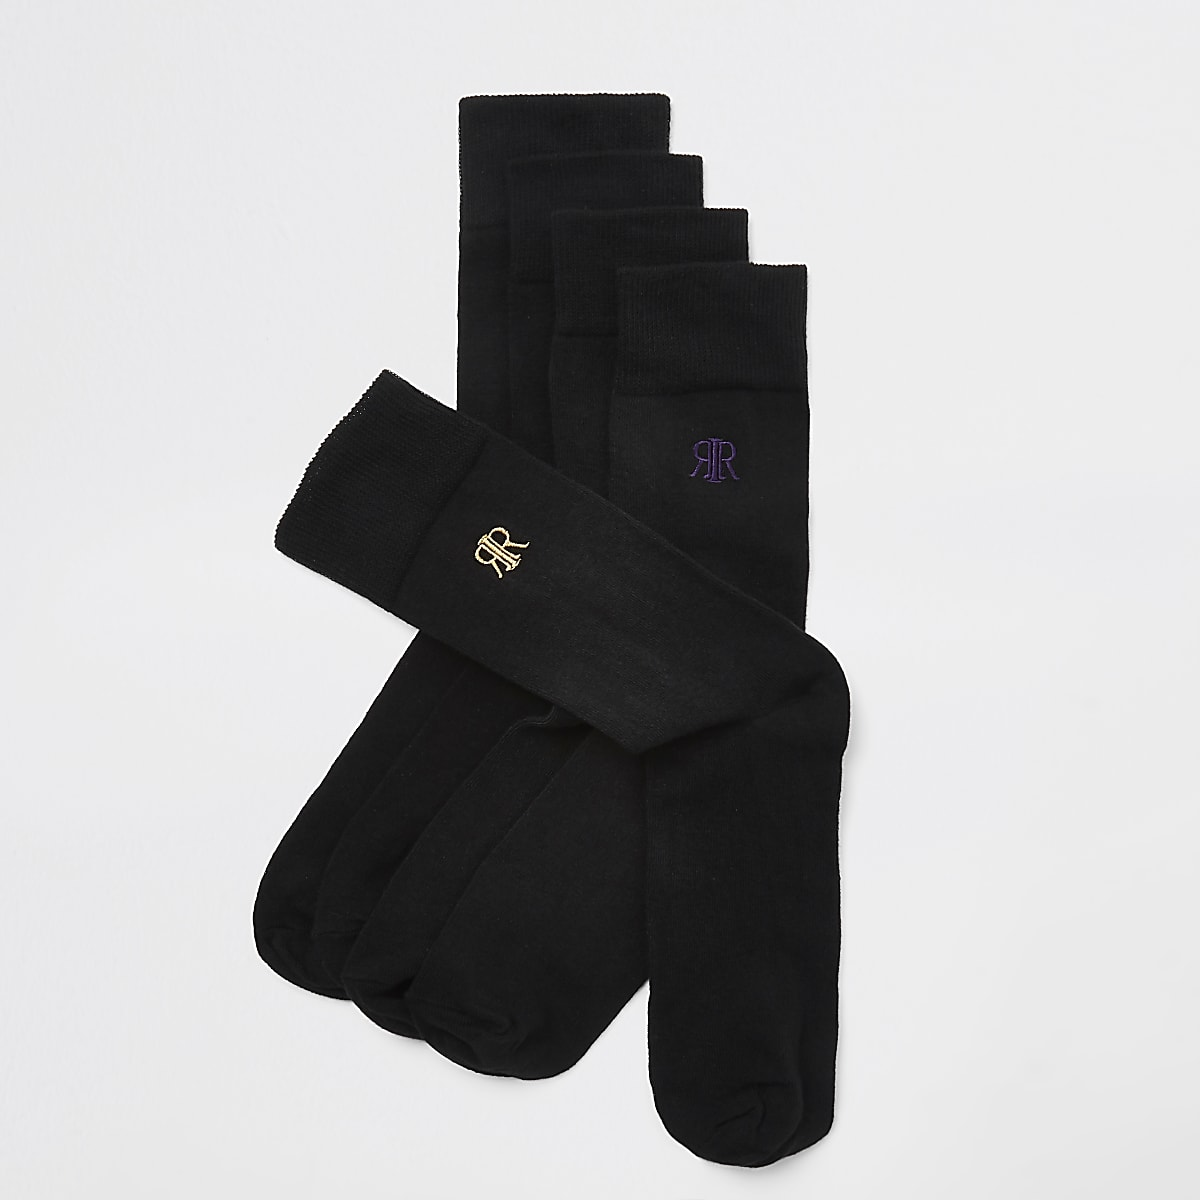 Black RI embroidered socks 5 pack